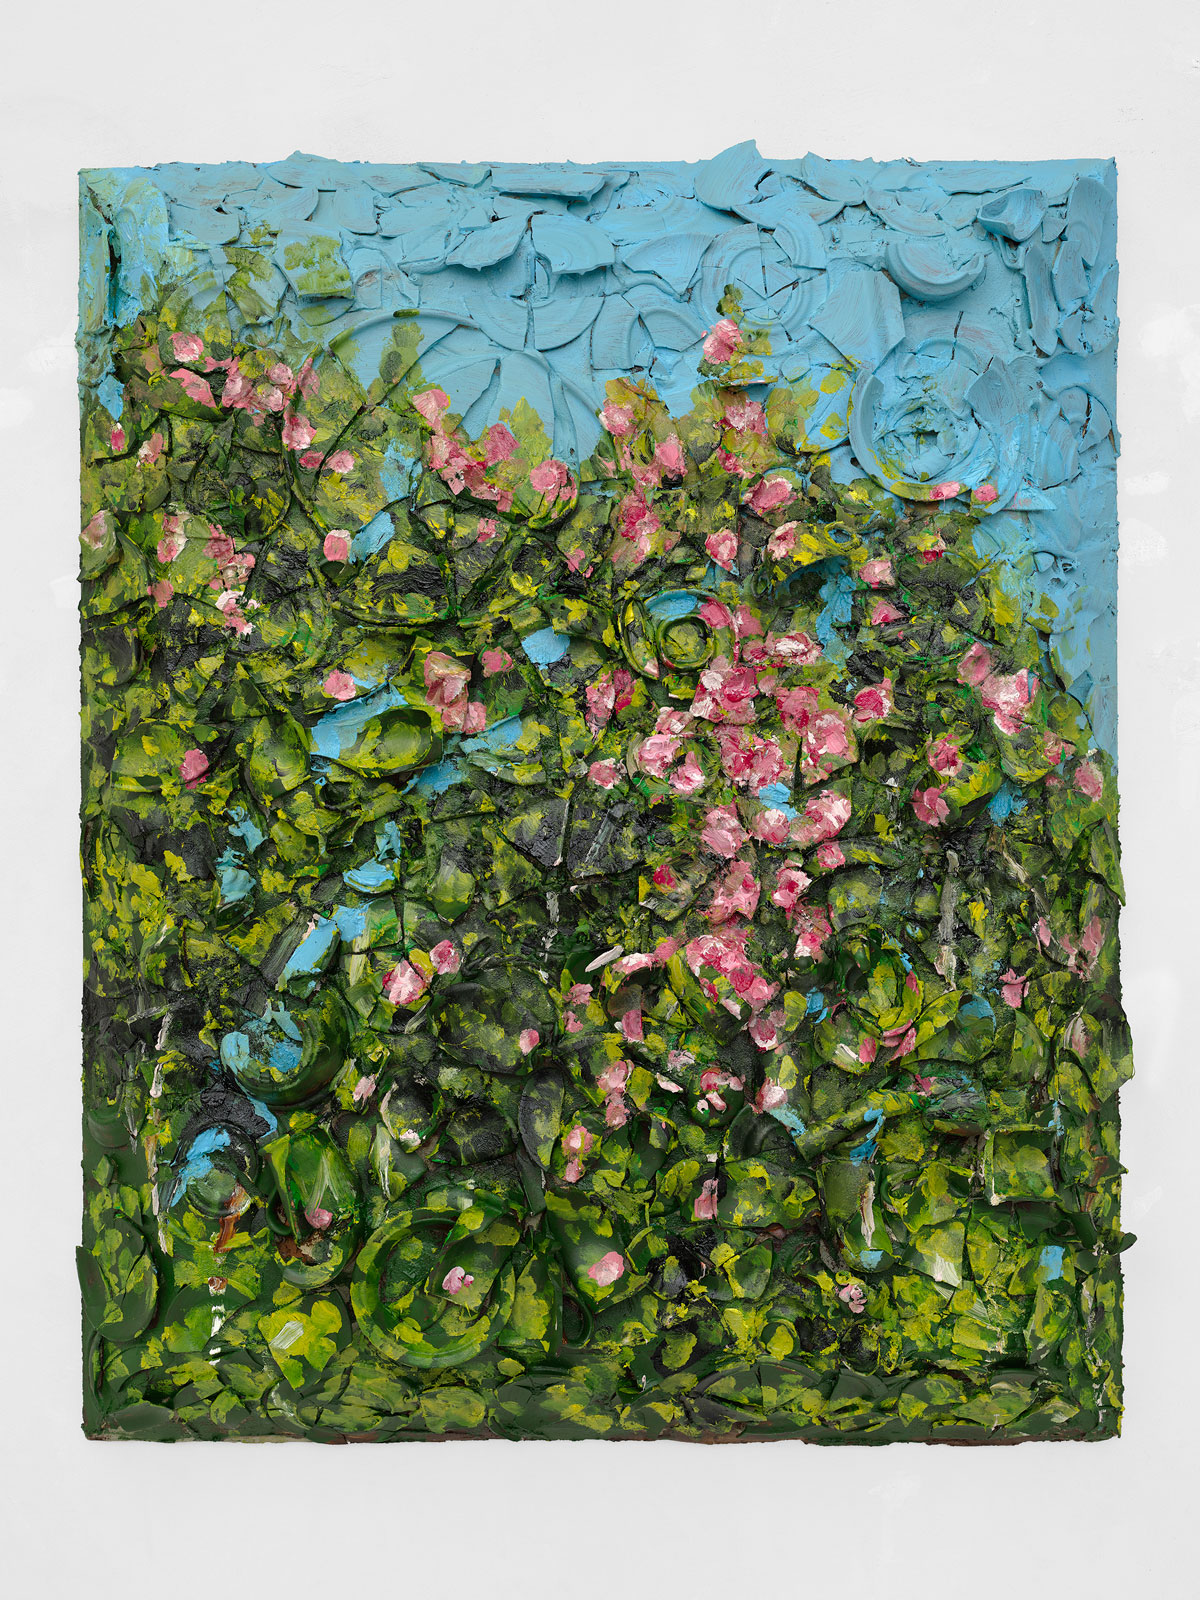 Sliding Back to Home Plate: Julian Schnabel at PACE Palm Beach